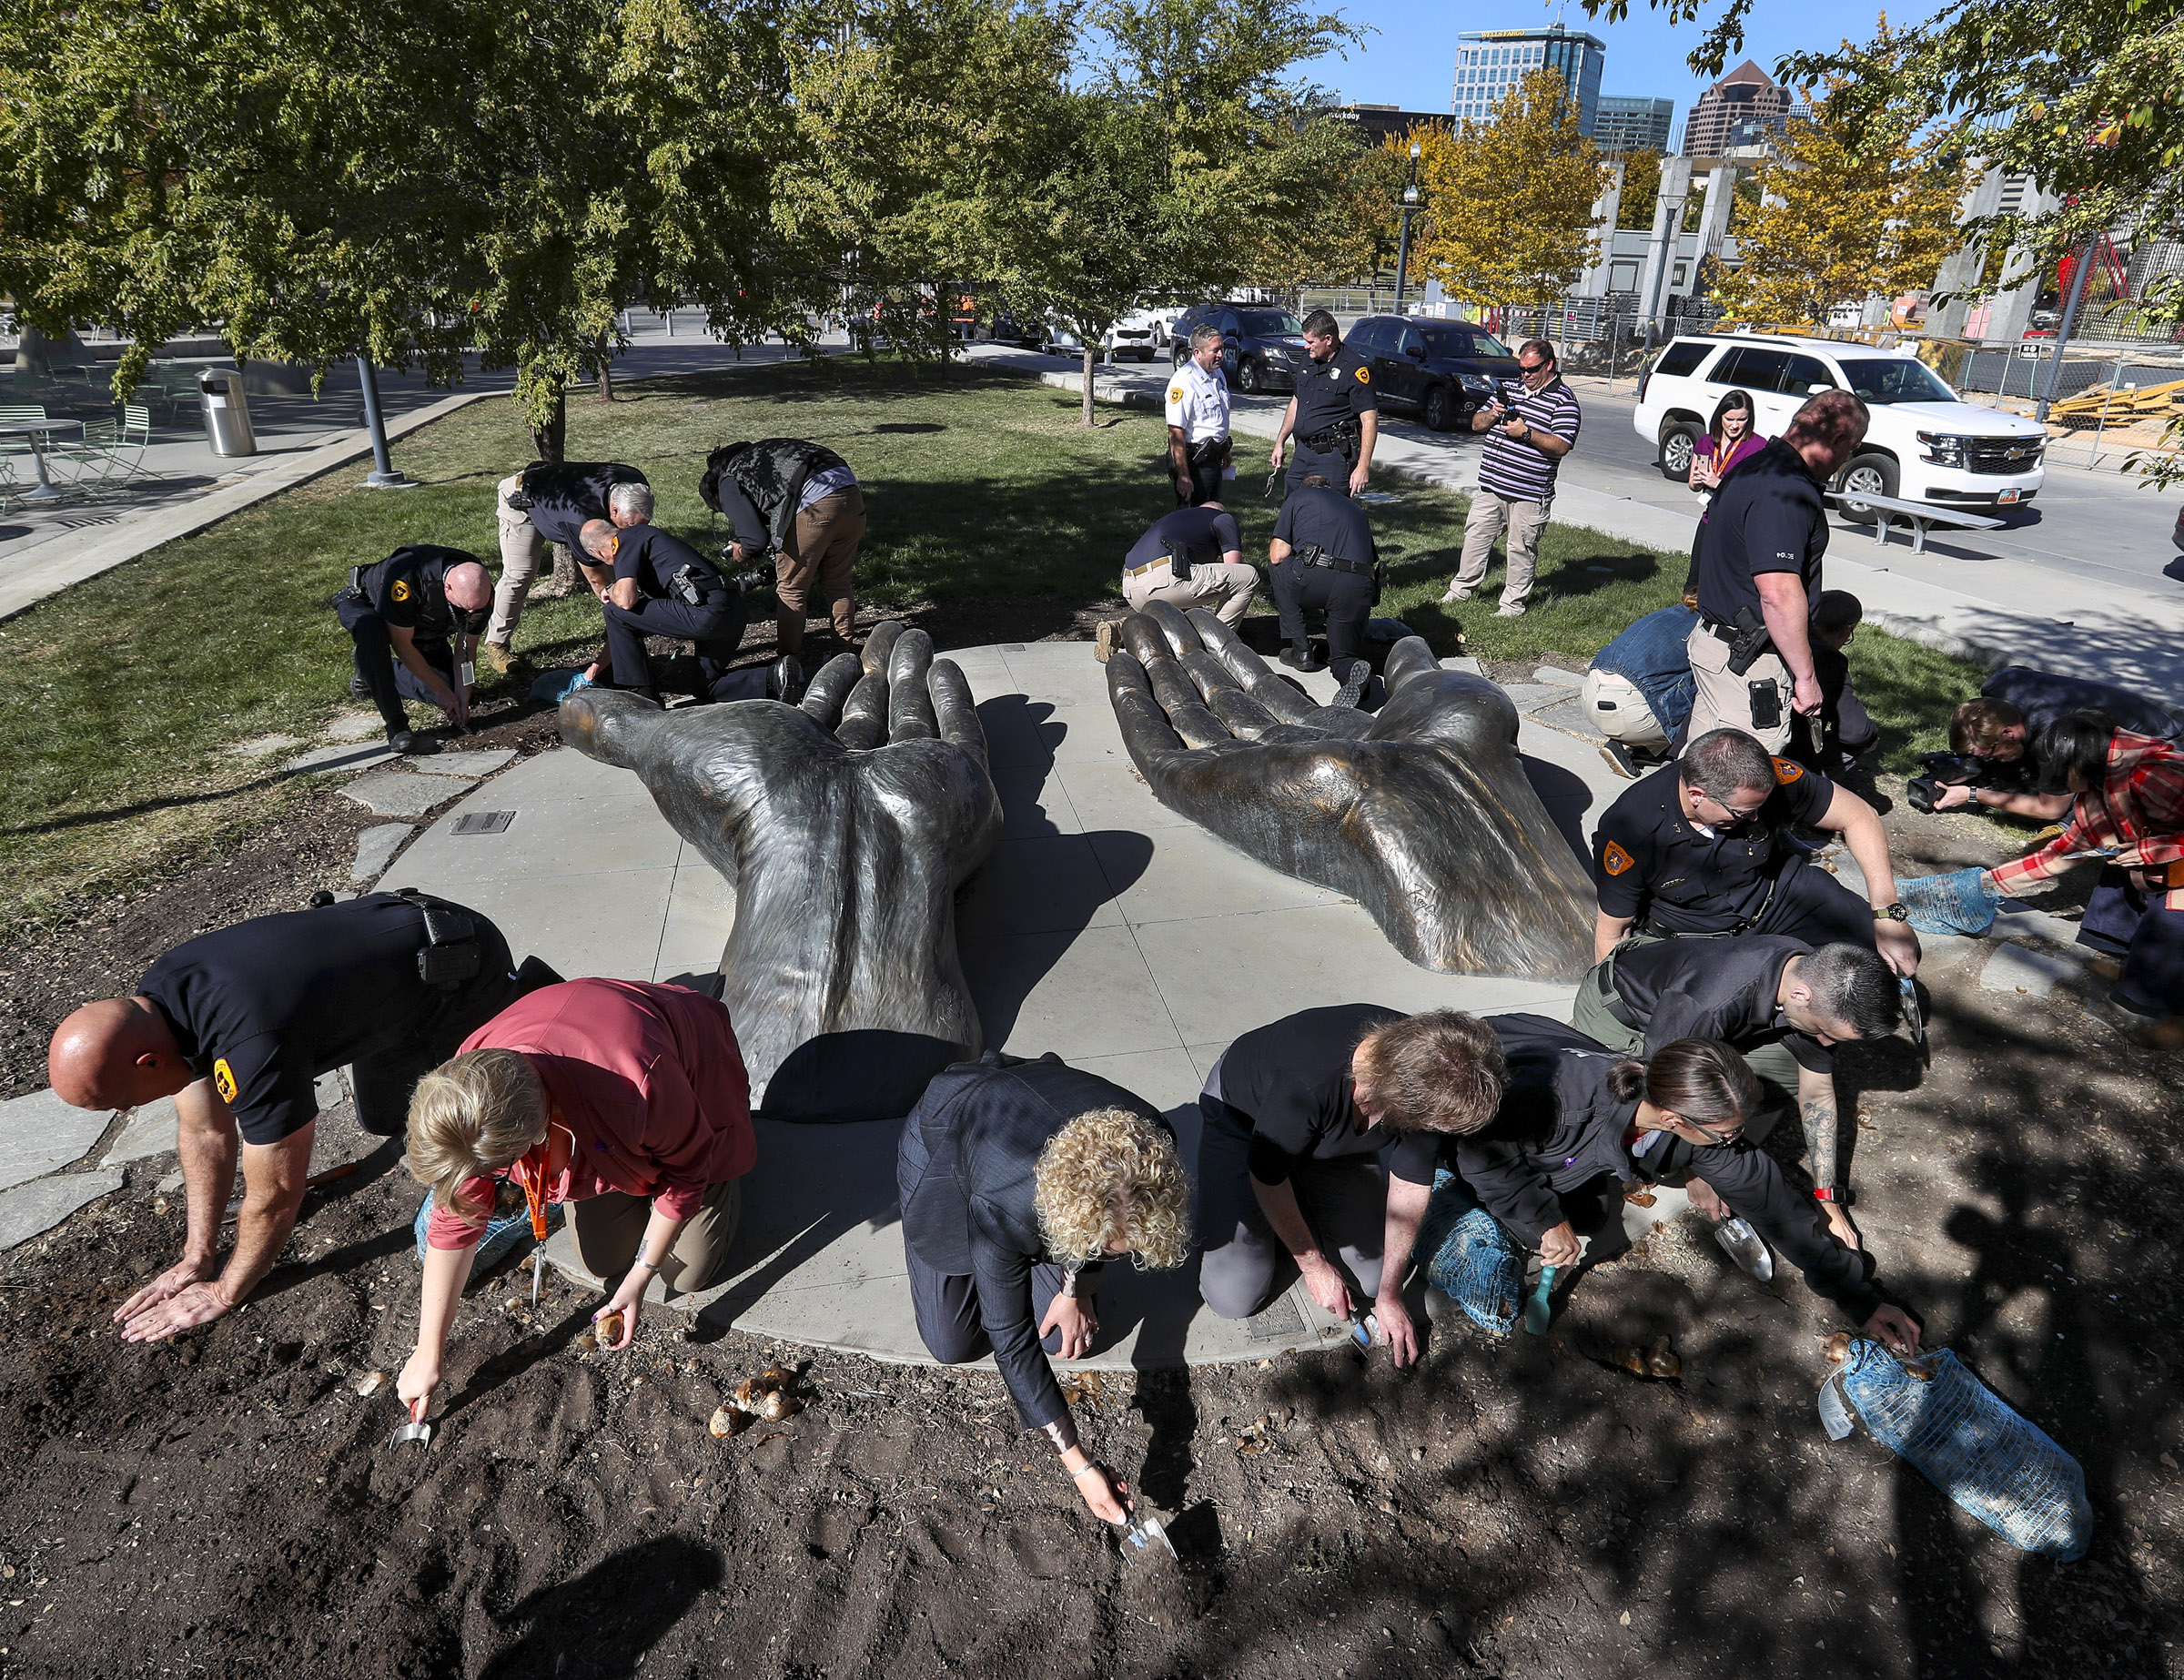 Salt Lake City Police Chief Mike Brown, bottom left, Amy Fladmo, director of the YWCA Women in Jeopardy Crisis Shelter, Salt Lake City Mayor Jackie Biskupski and others plant daffodil bulbs outside the Public Safety Building in Salt Lake City on Wednesday, Oct. 16, 2019, in honor of those who lost their lives to domestic violence in Utah last year.